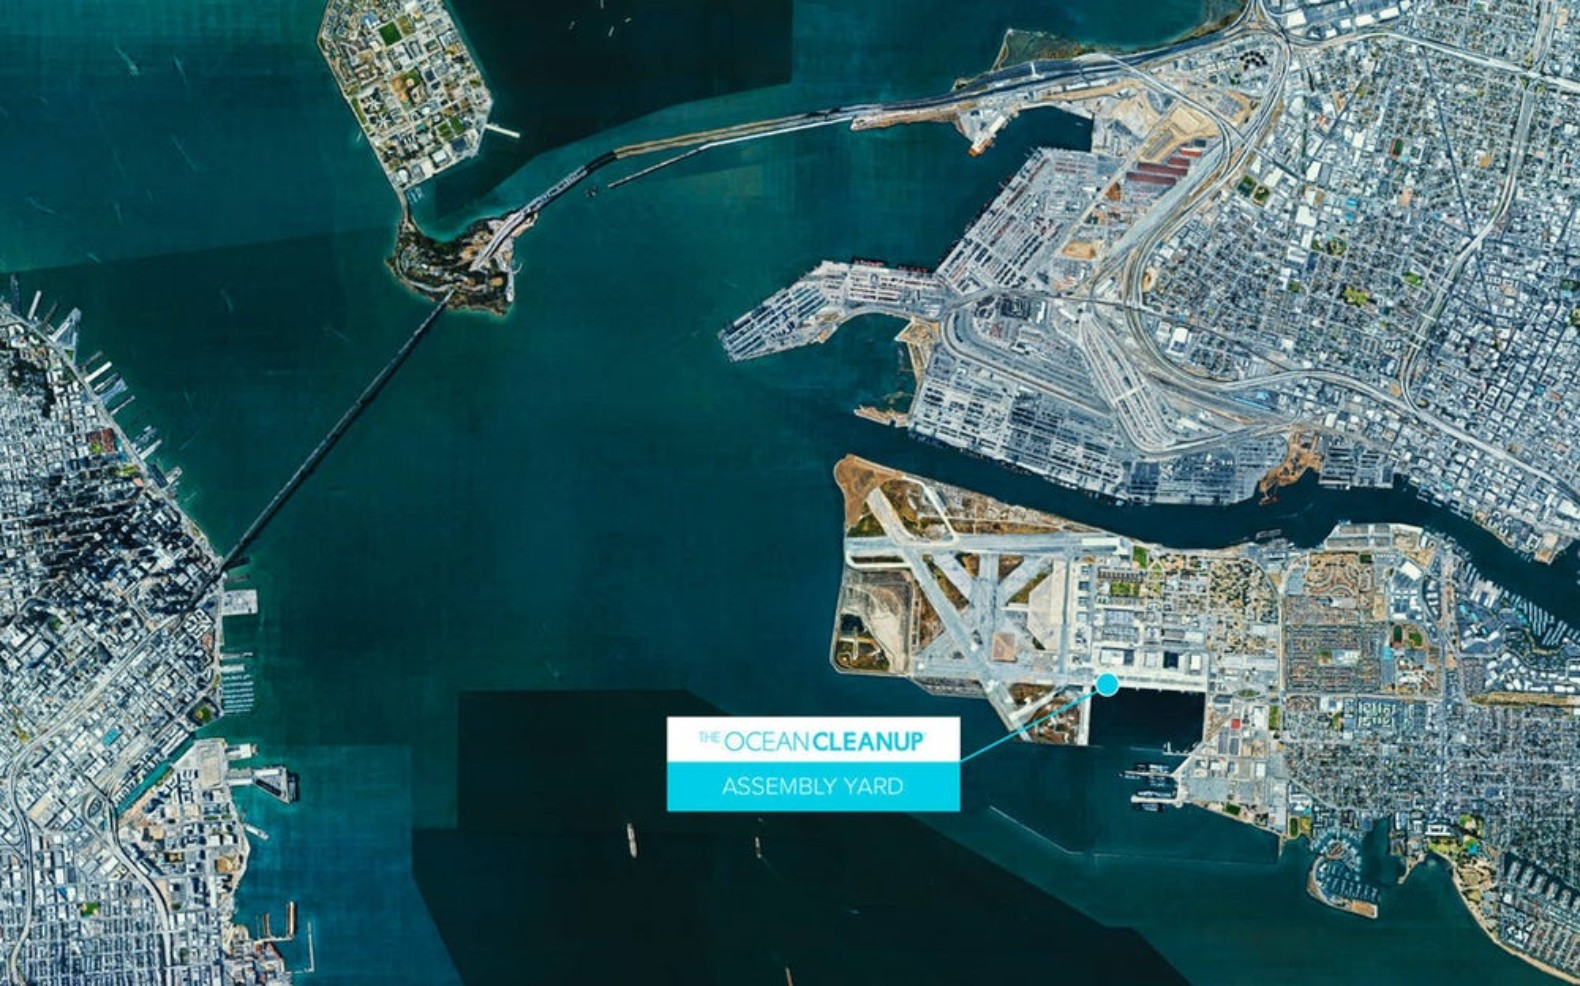 The Ocean Cleanup launches San Francisco base in Pacific trash-busting bid